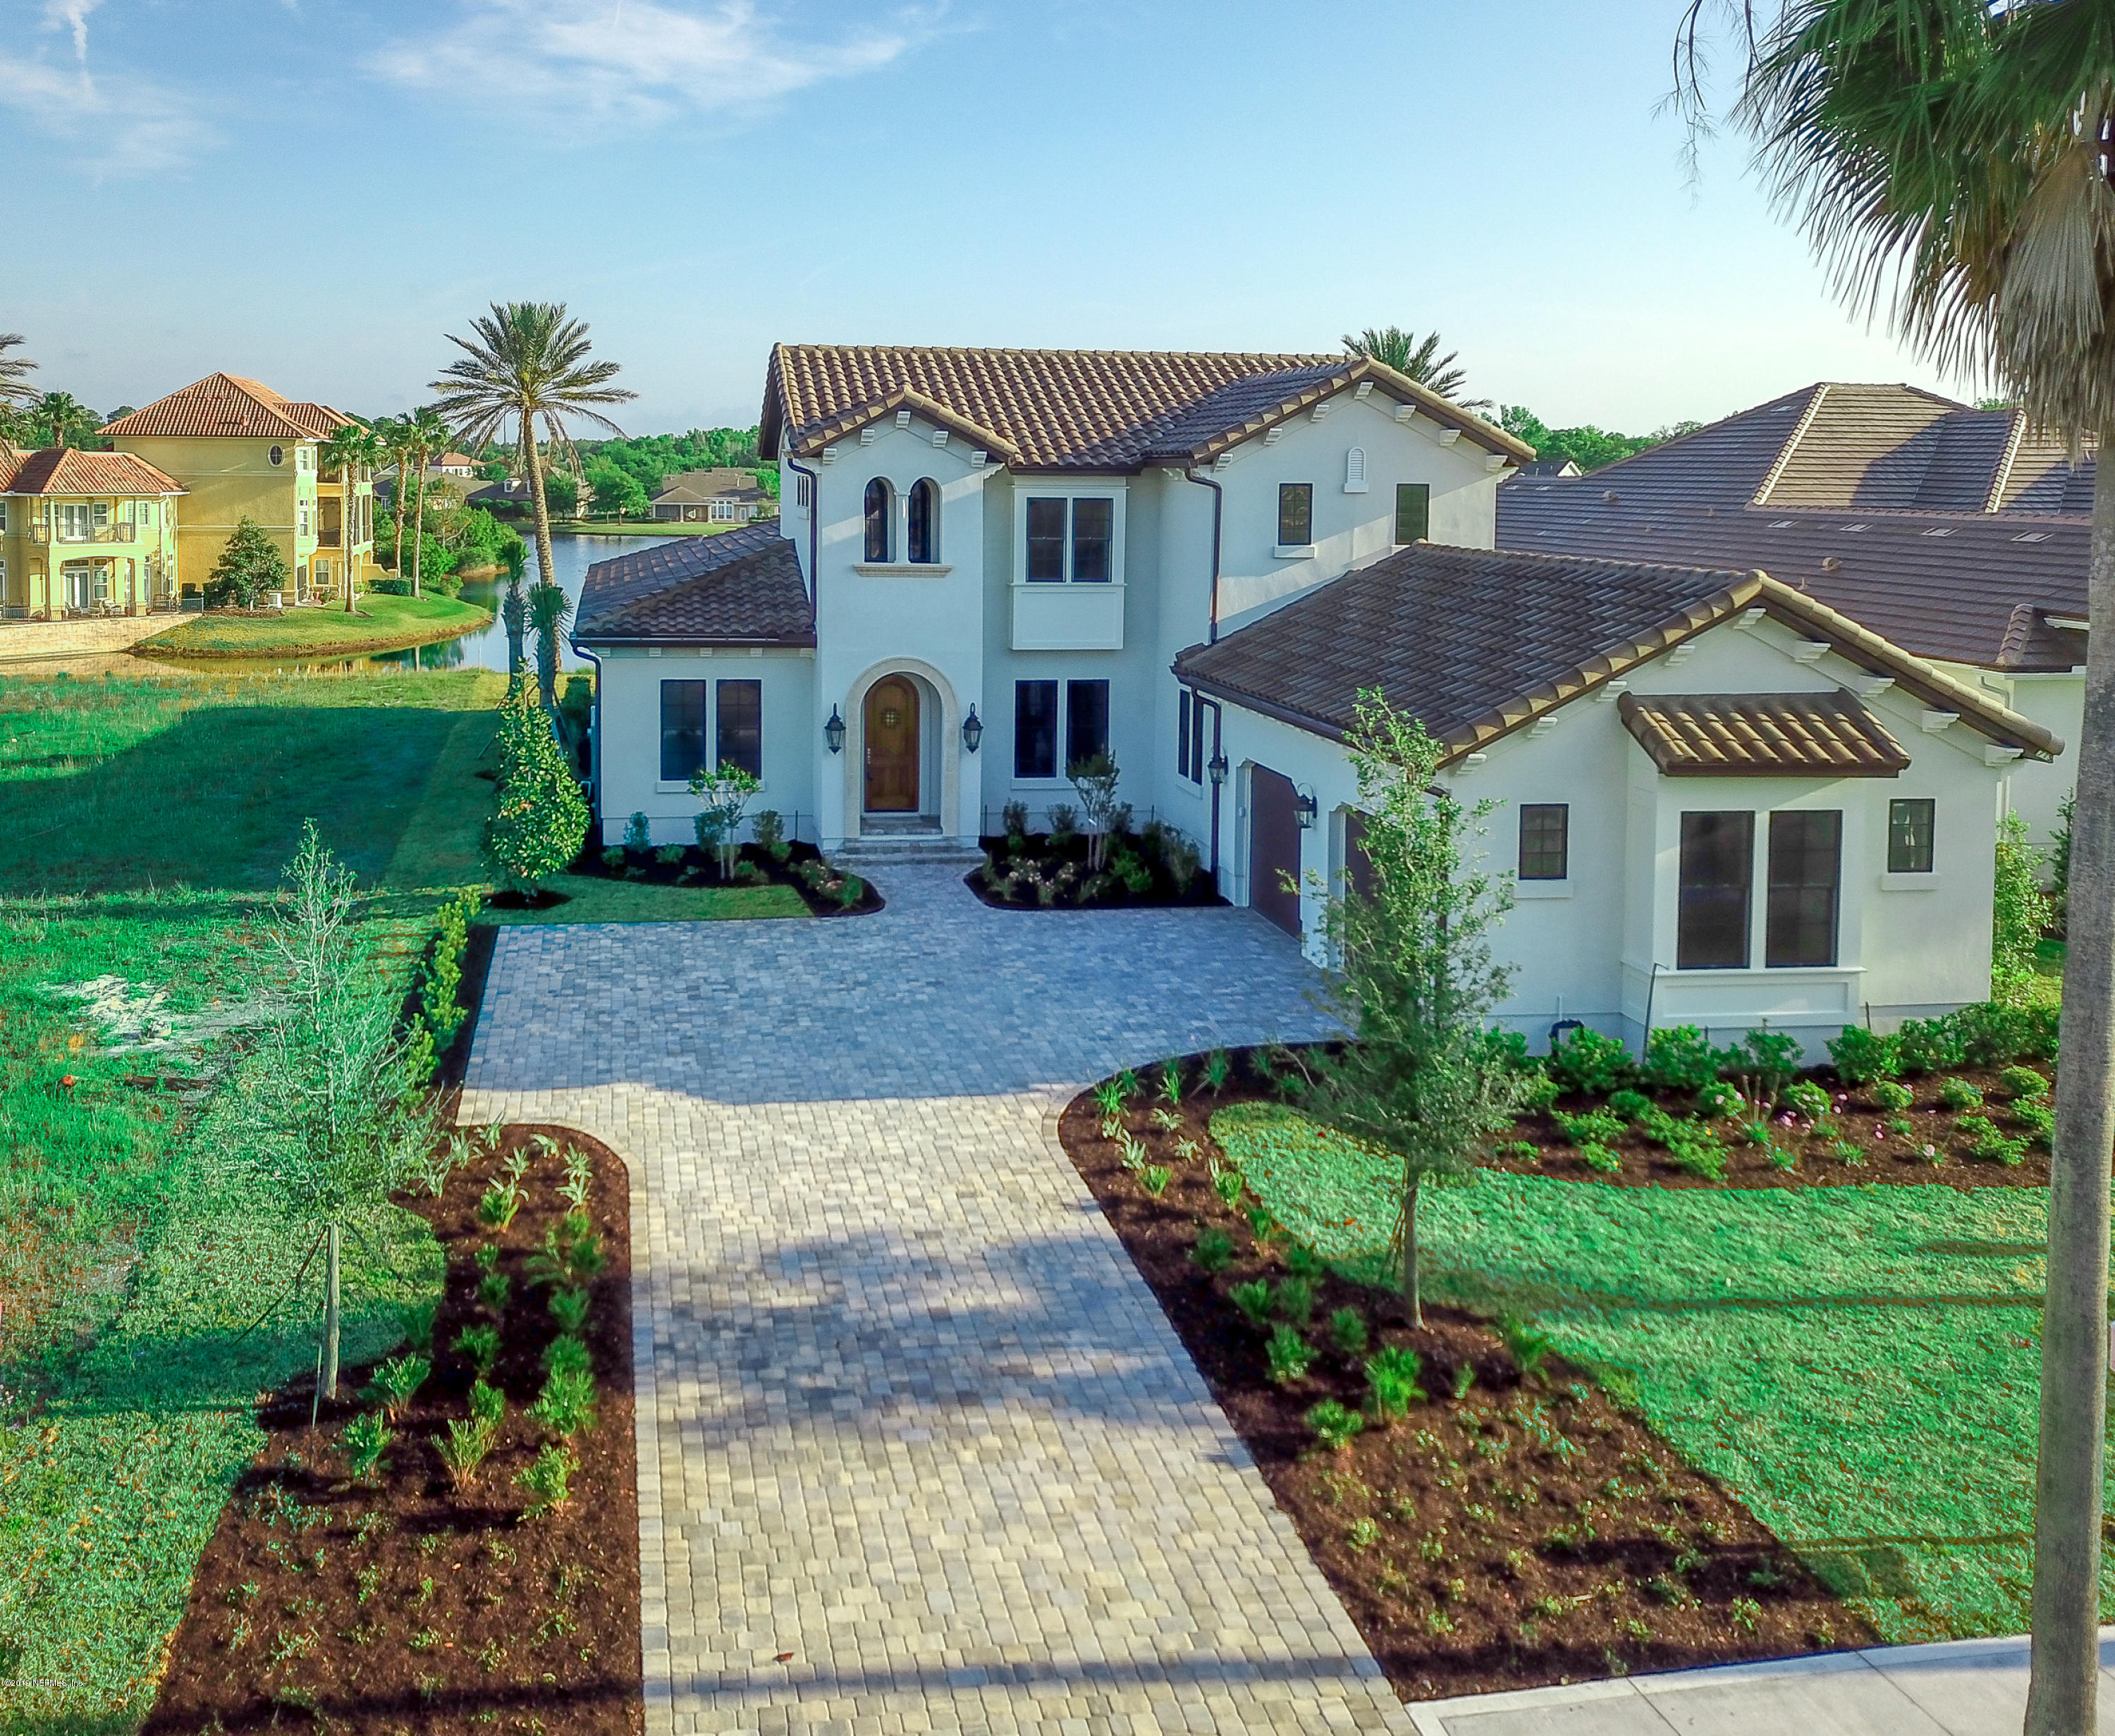 719 PROMENADE POINTE, ST AUGUSTINE, FLORIDA 32095, 4 Bedrooms Bedrooms, ,4 BathroomsBathrooms,Residential - single family,For sale,PROMENADE POINTE,988052